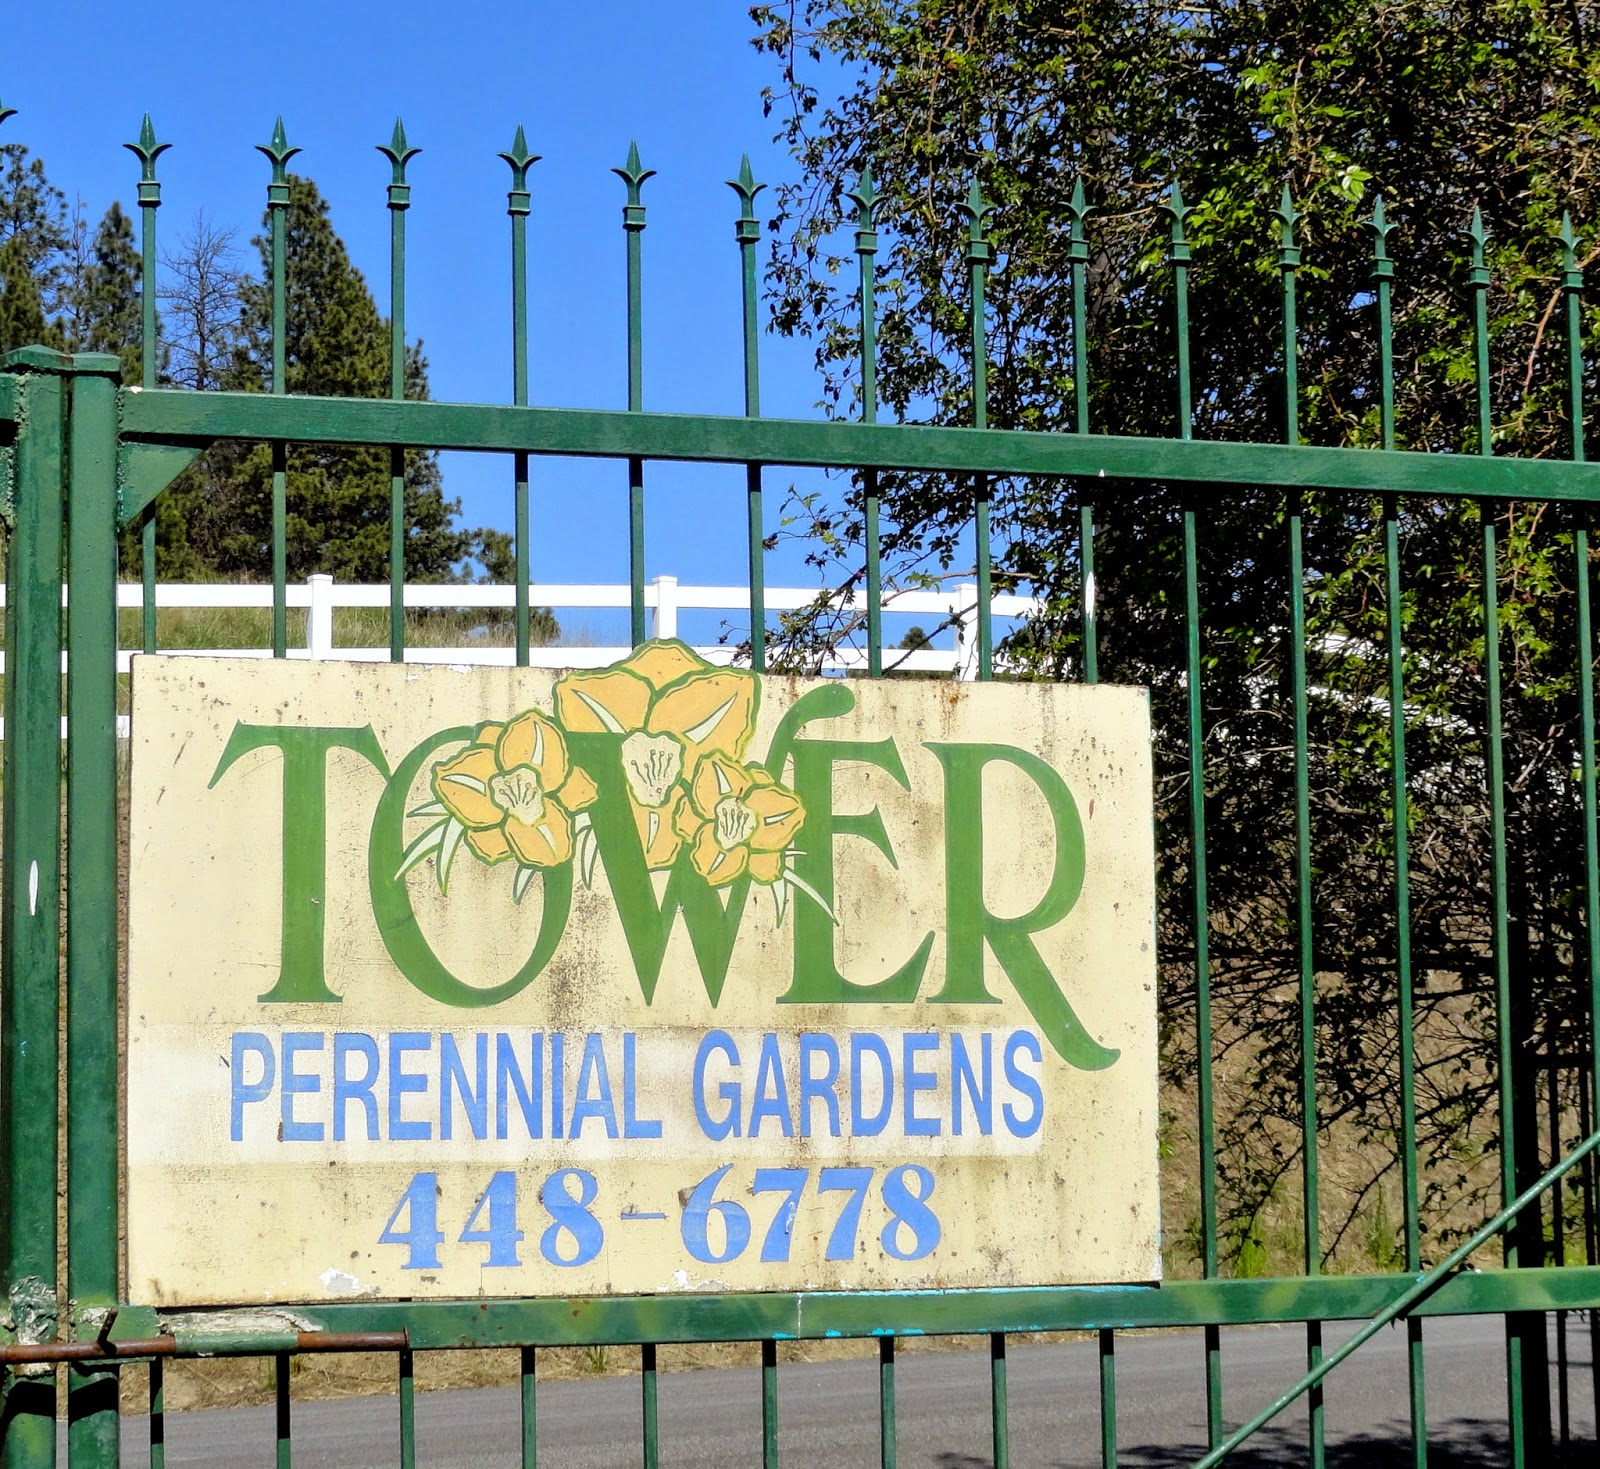 One More Spokane Nursery Visit: Tower Perennial Gardens